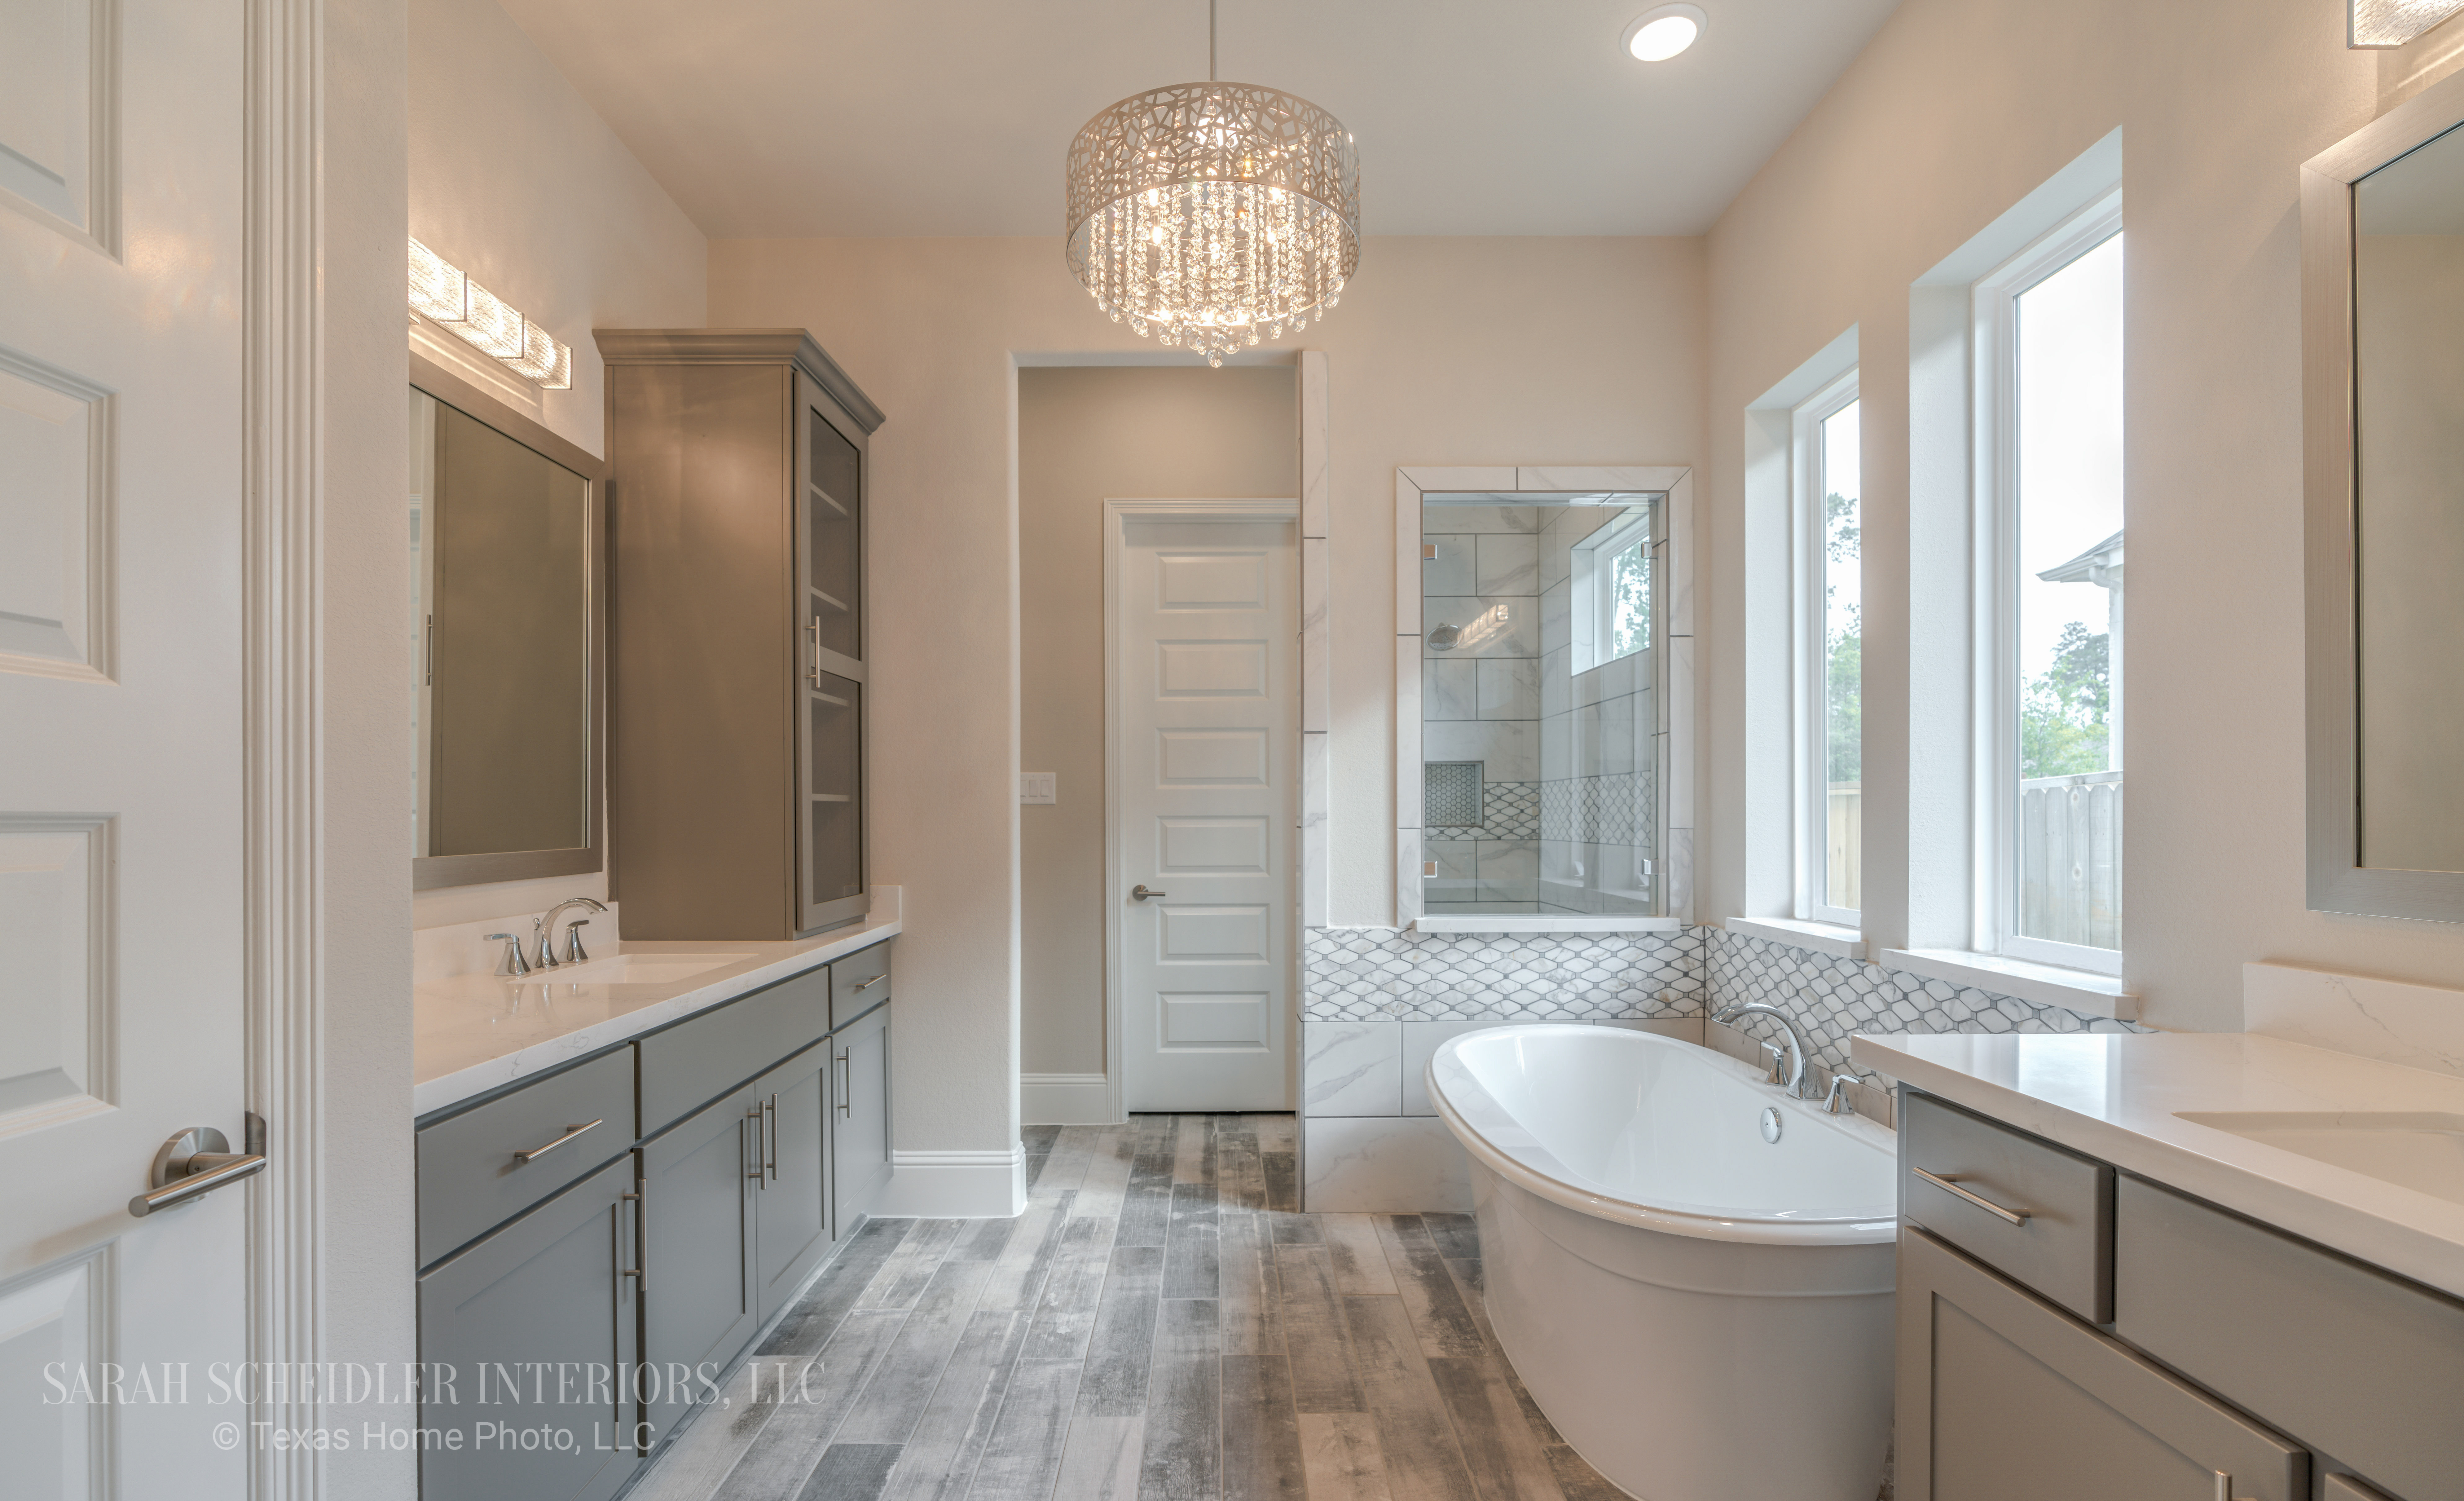 White and Grey Rustic Glam Master Bathroom Design with Freestanding Tub, Marble Accent Tile, Crystal Lighting and Wood Tile Flooring